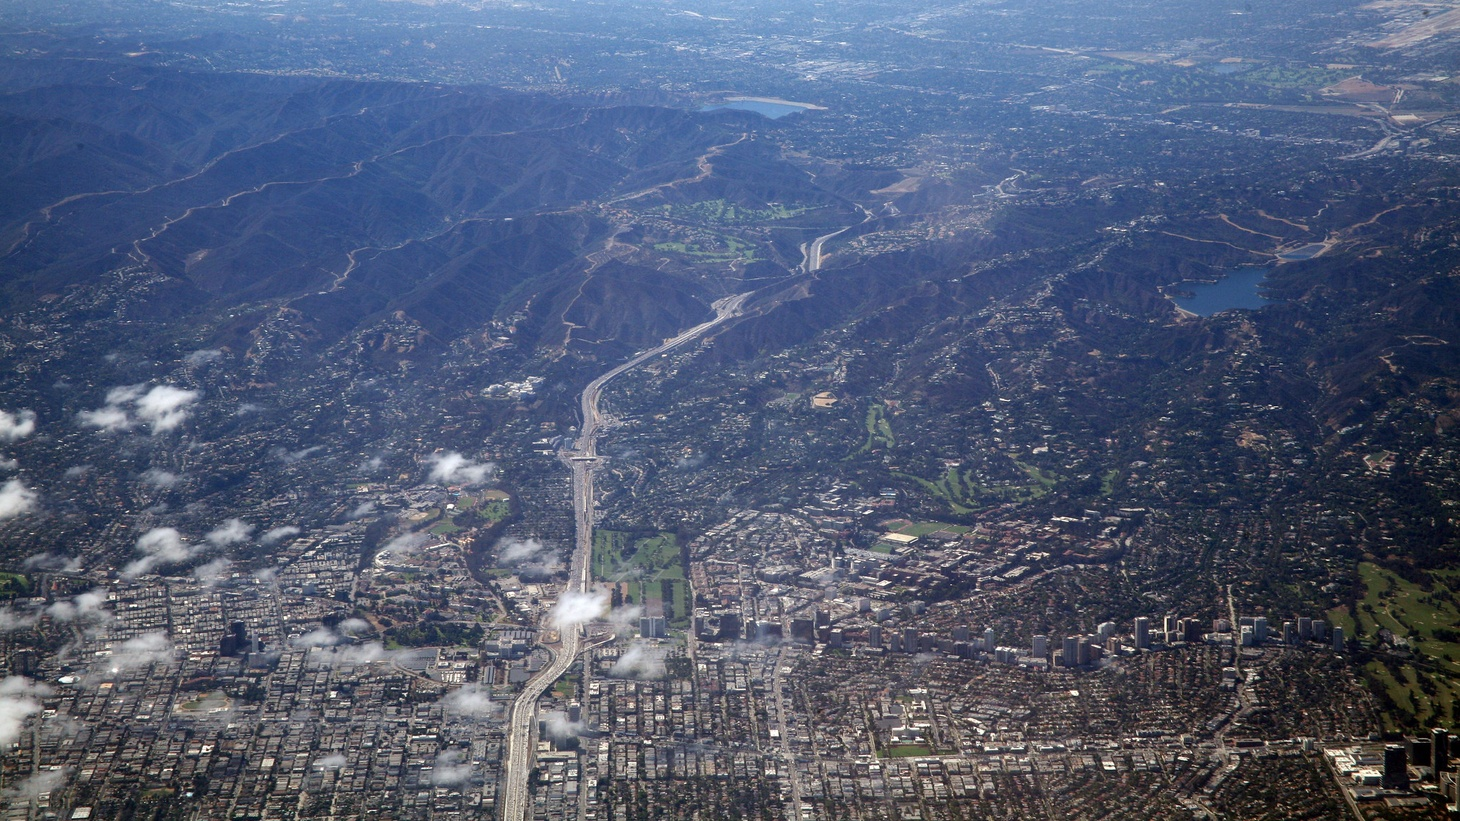 The Sepulveda Pass, and Interstate Highway 405, head north out of the west side of Los Angeles, up to the San Fernando Valley